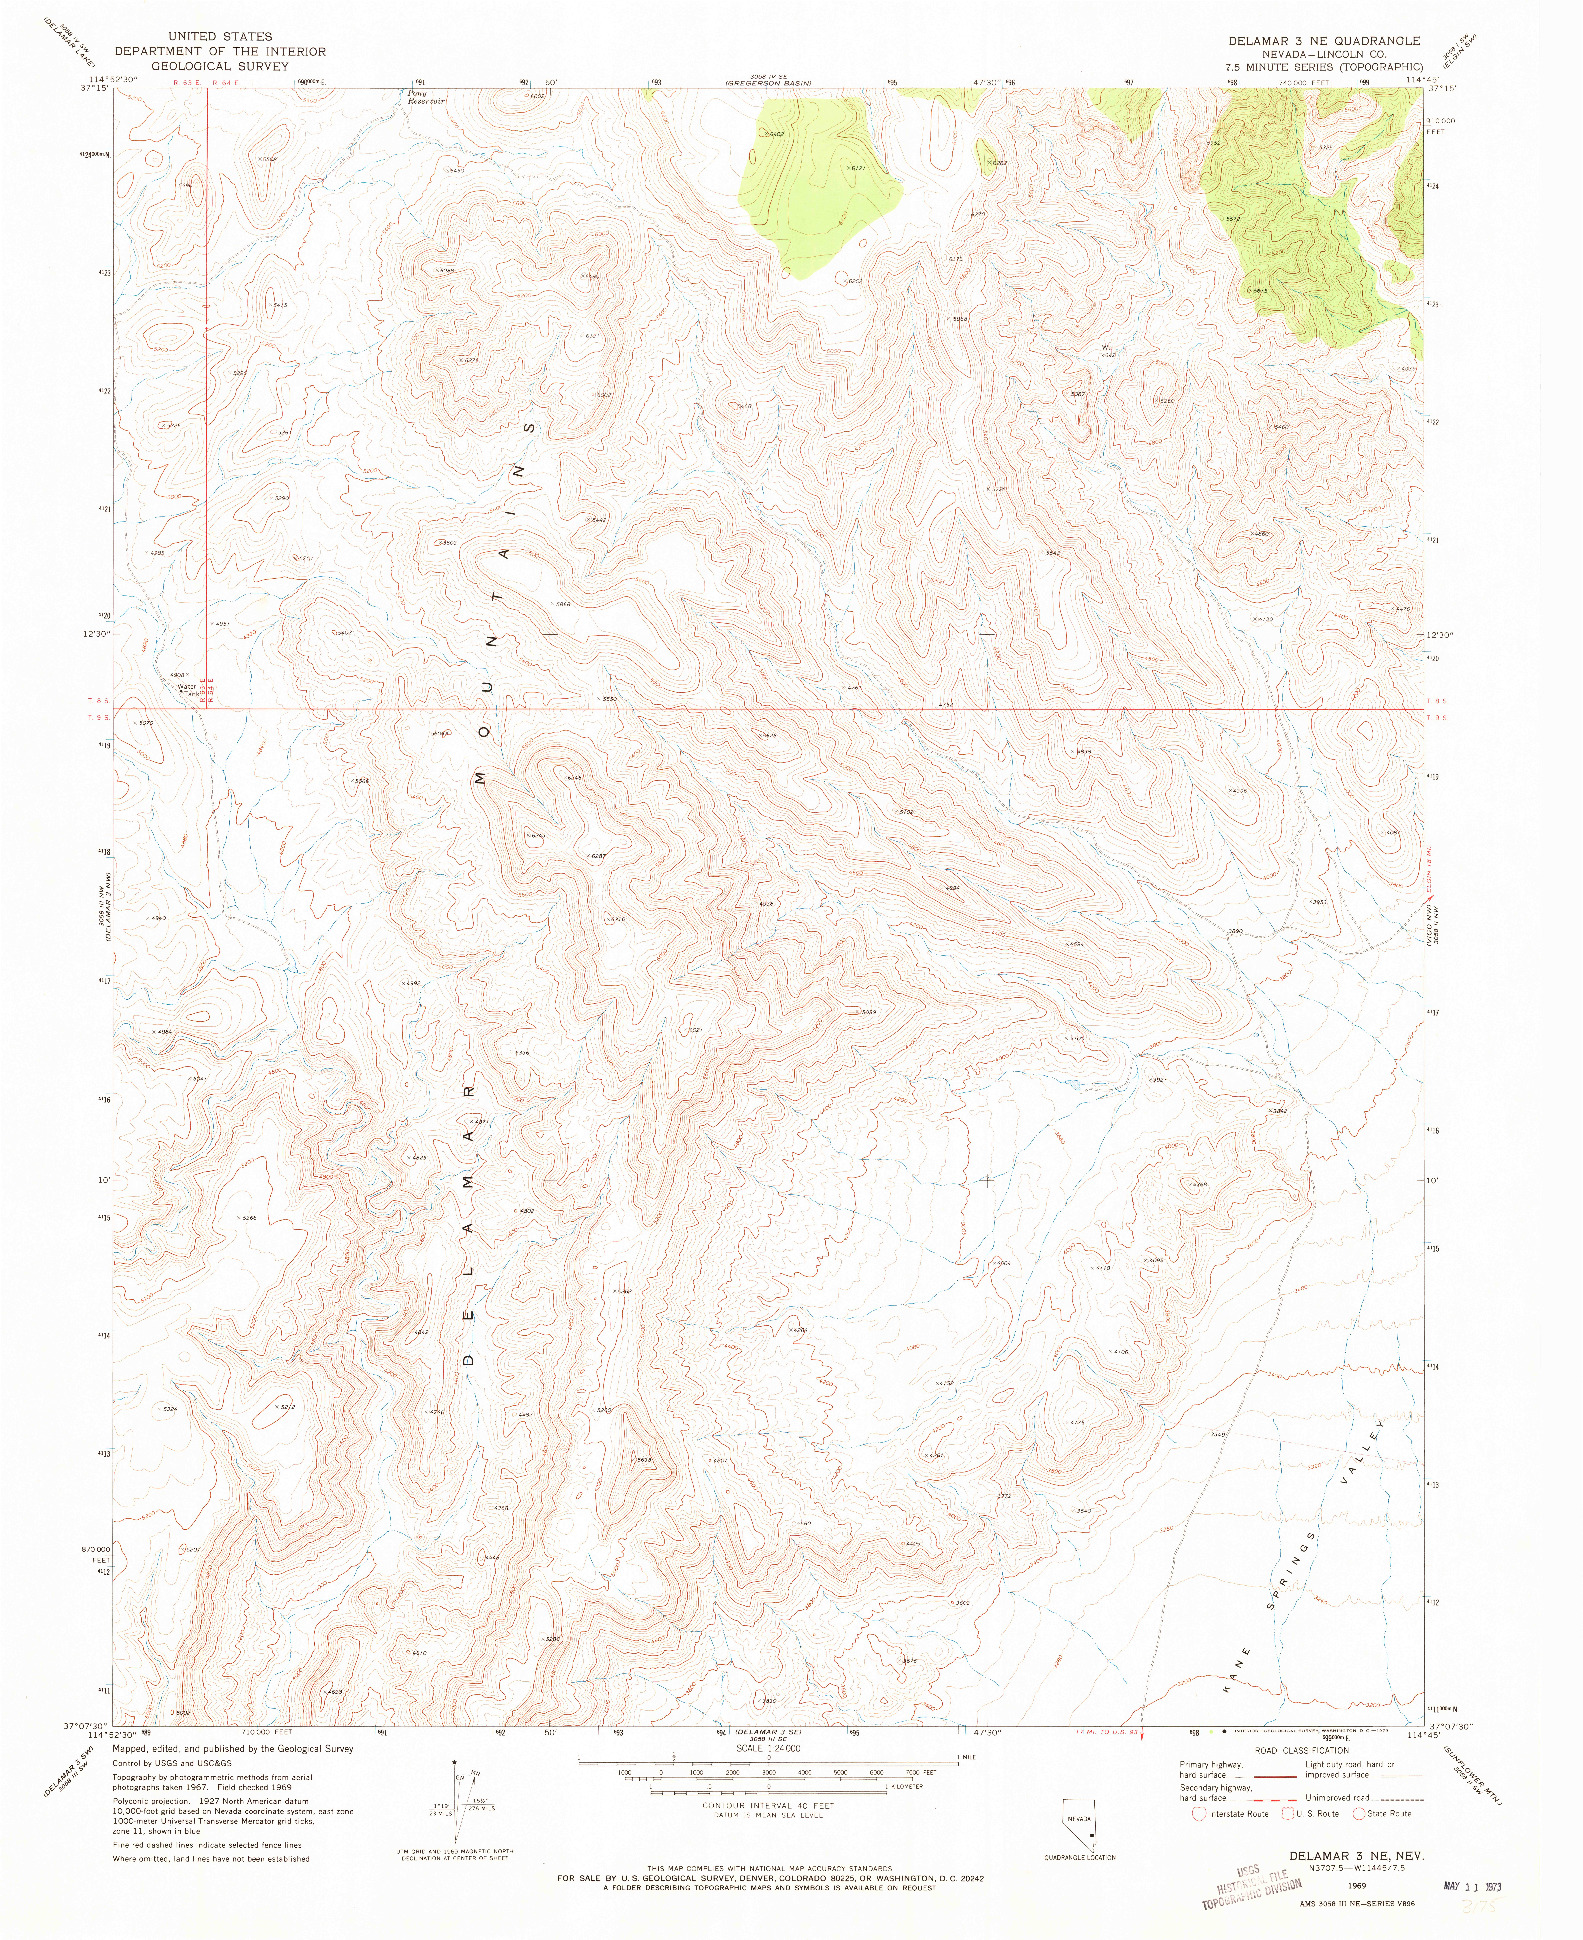 USGS 1:24000-SCALE QUADRANGLE FOR DELAMAR 3 NE, NV 1969